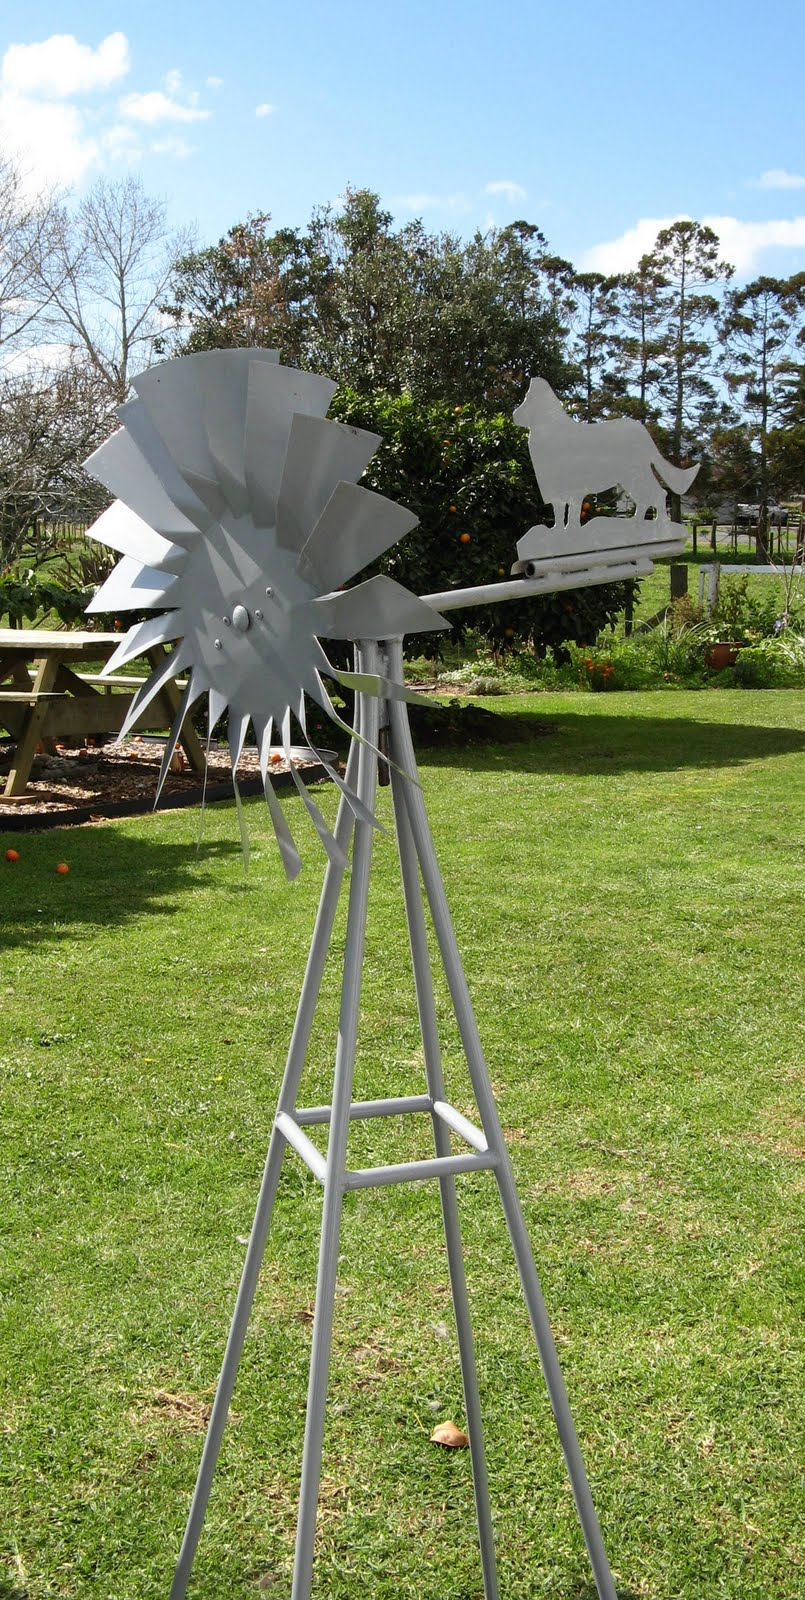 Best Woodworking Plans Free: Wood Windmill Plans Free ...